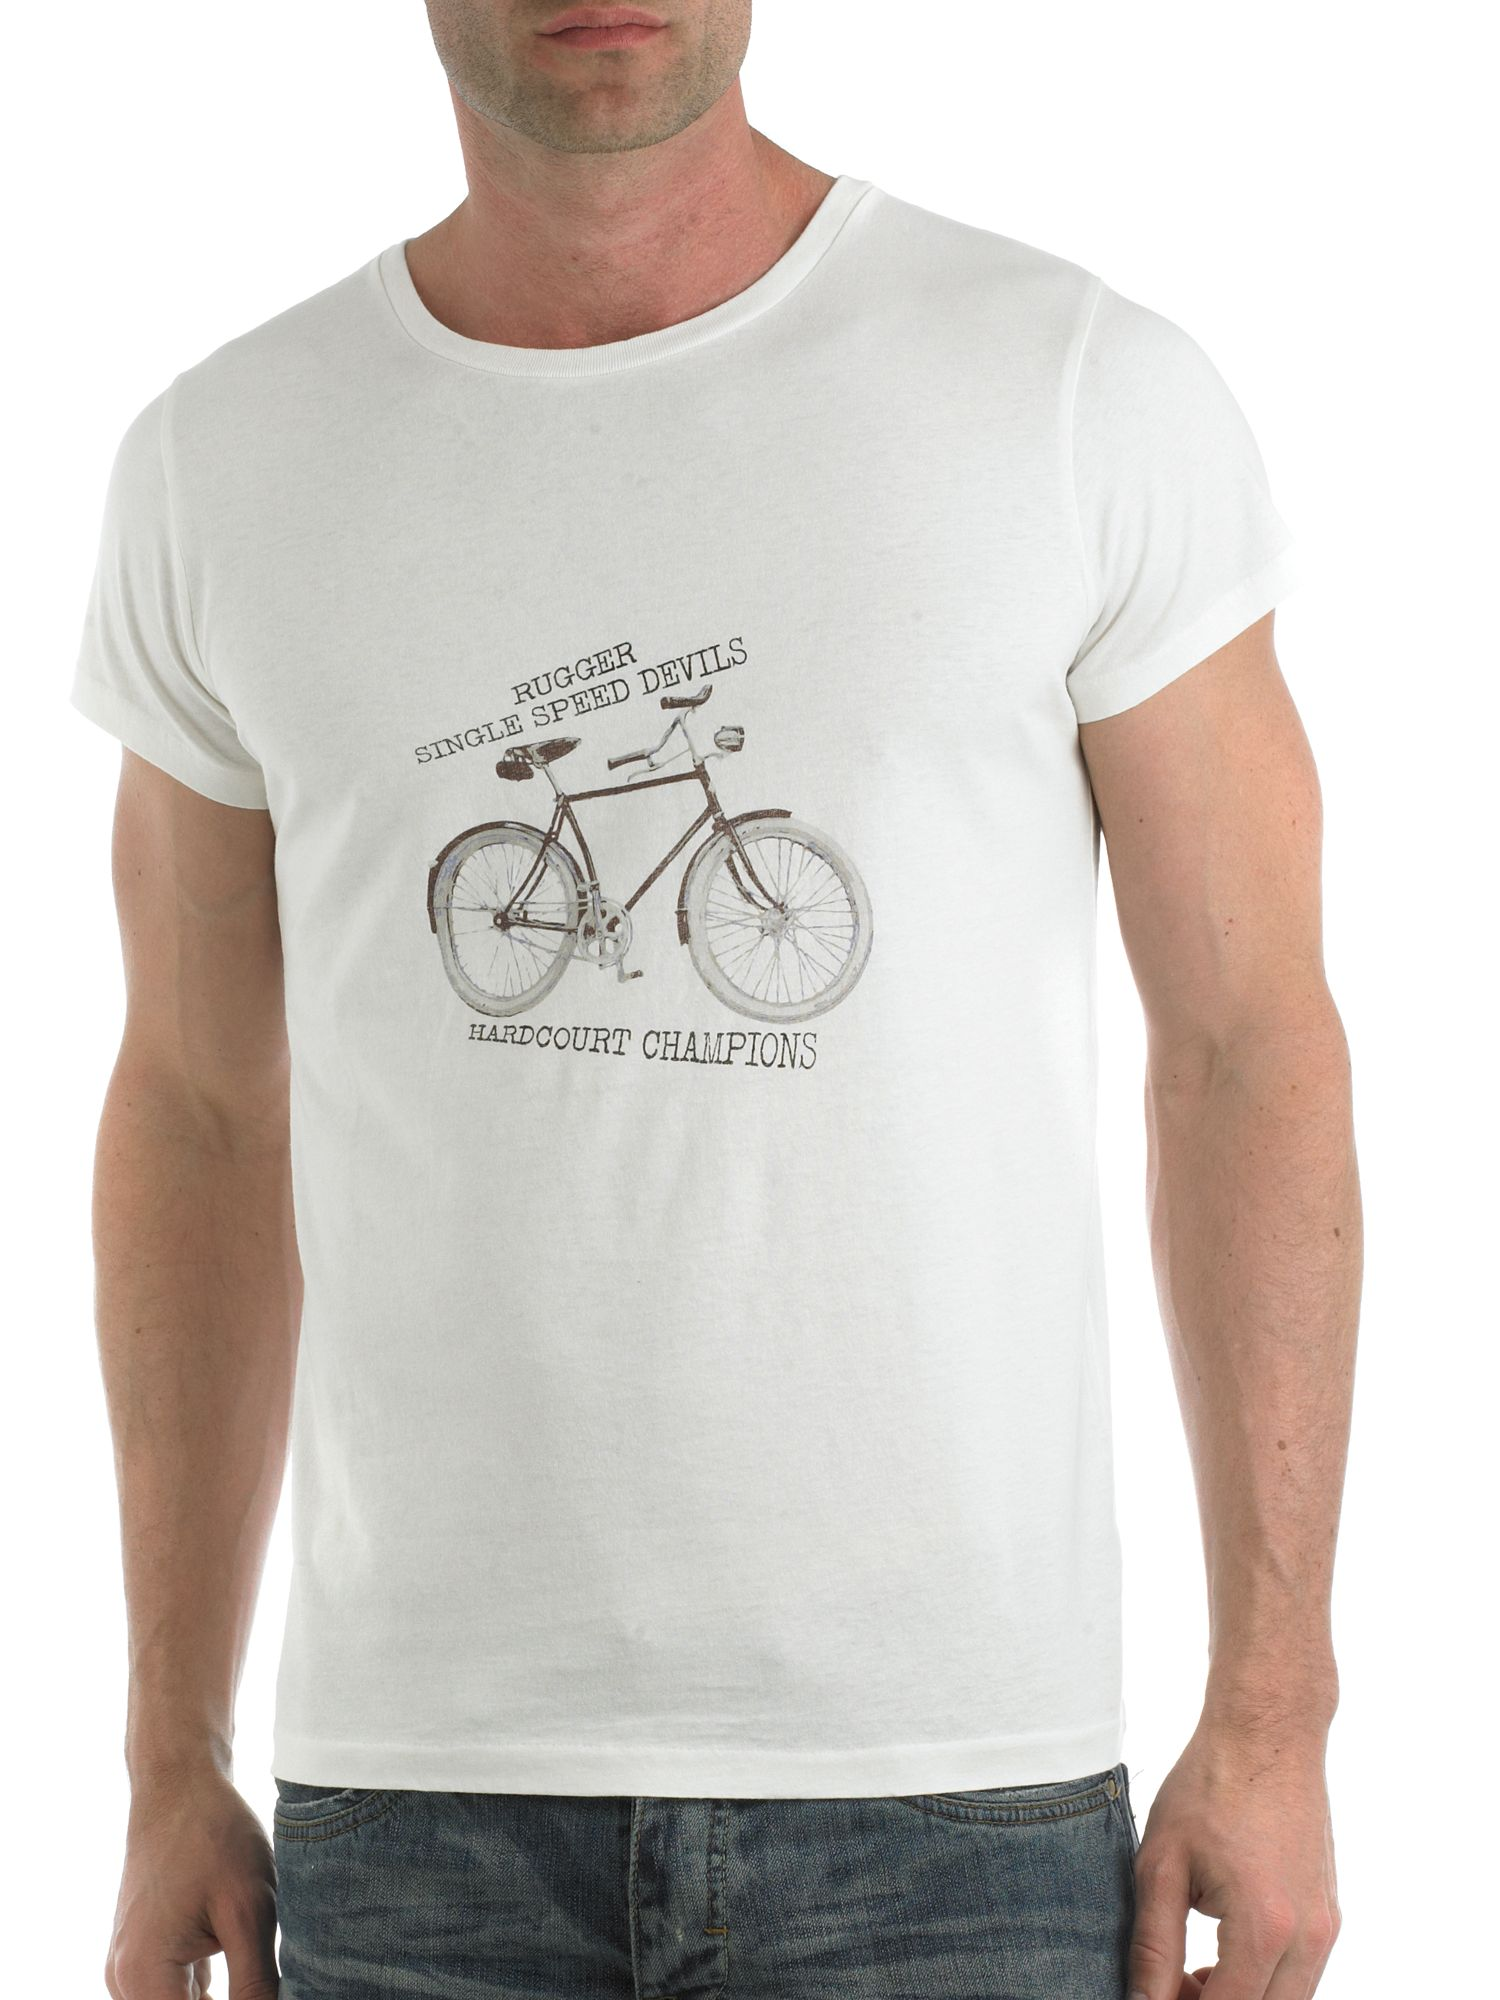 Rugger Bike hardcourt champions t-shirt product image